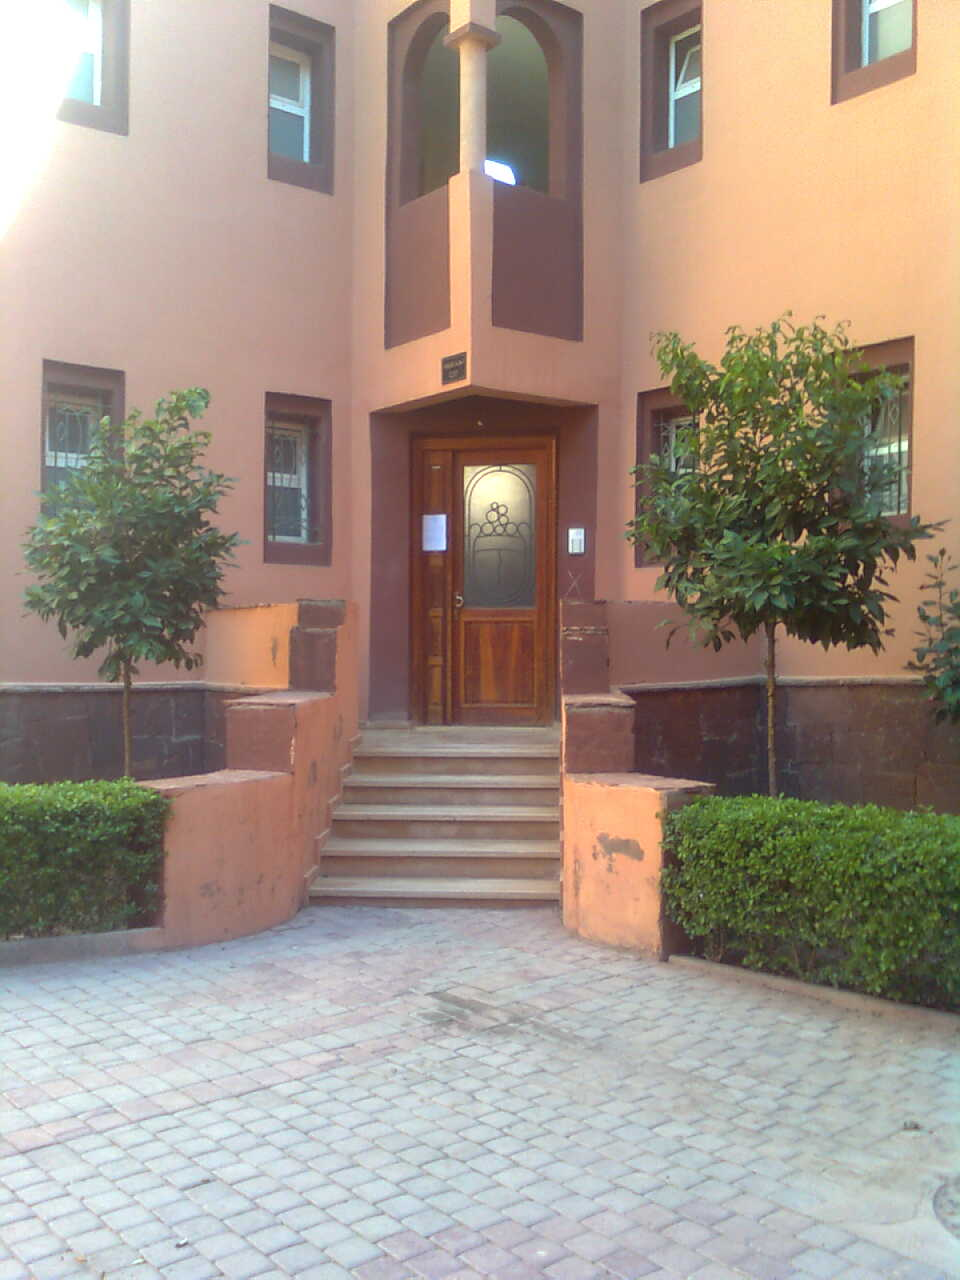 Appartement en Vente à marrakech 630.000 DH